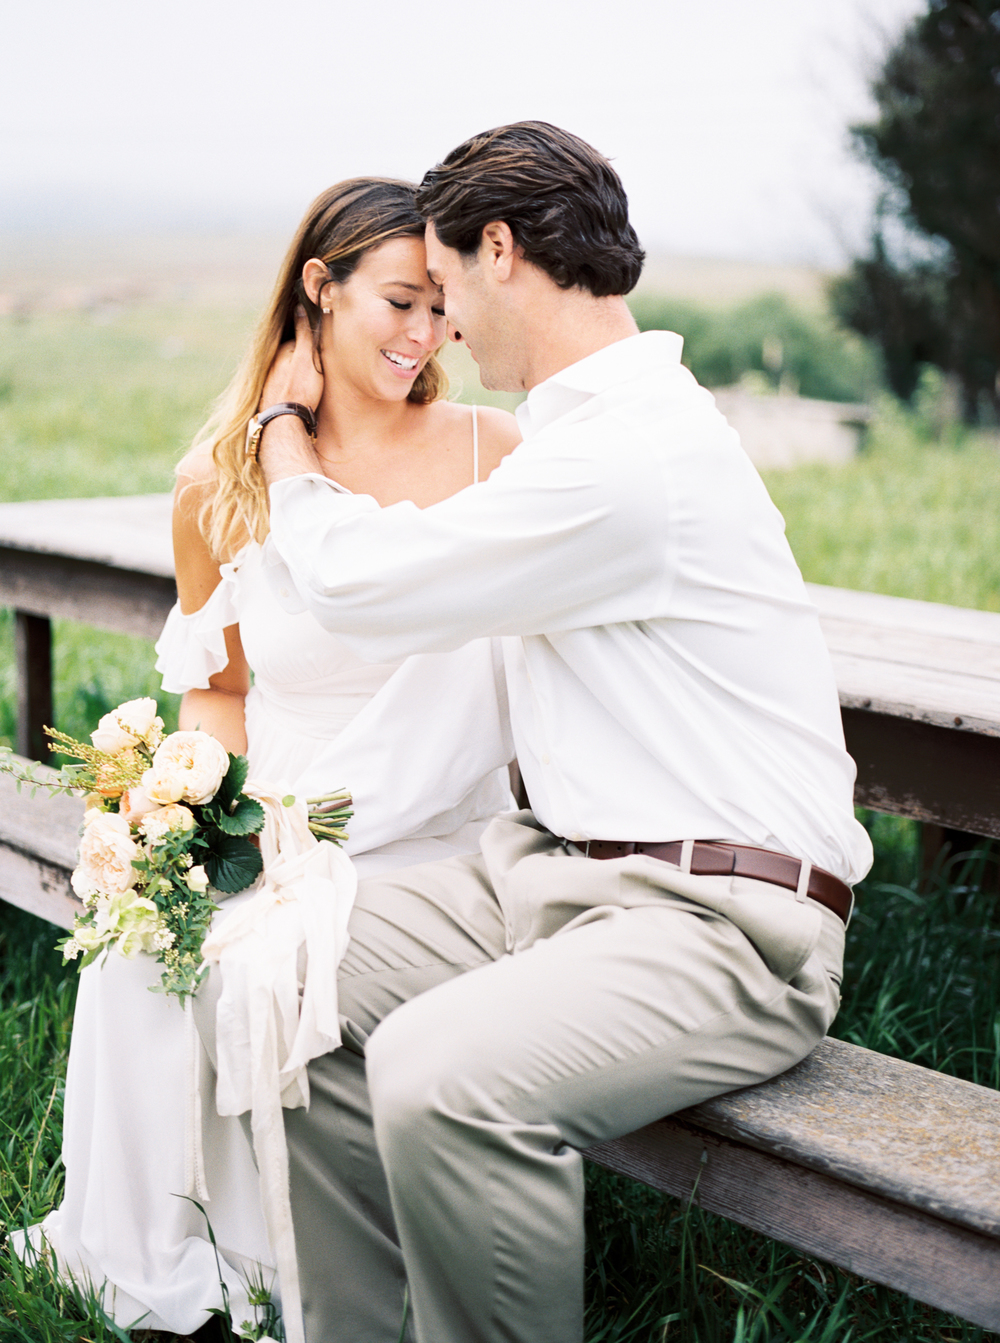 Danford-Photography-Bozeman-Montana-California-Wedding-Engagement-Photographer-44.jpg